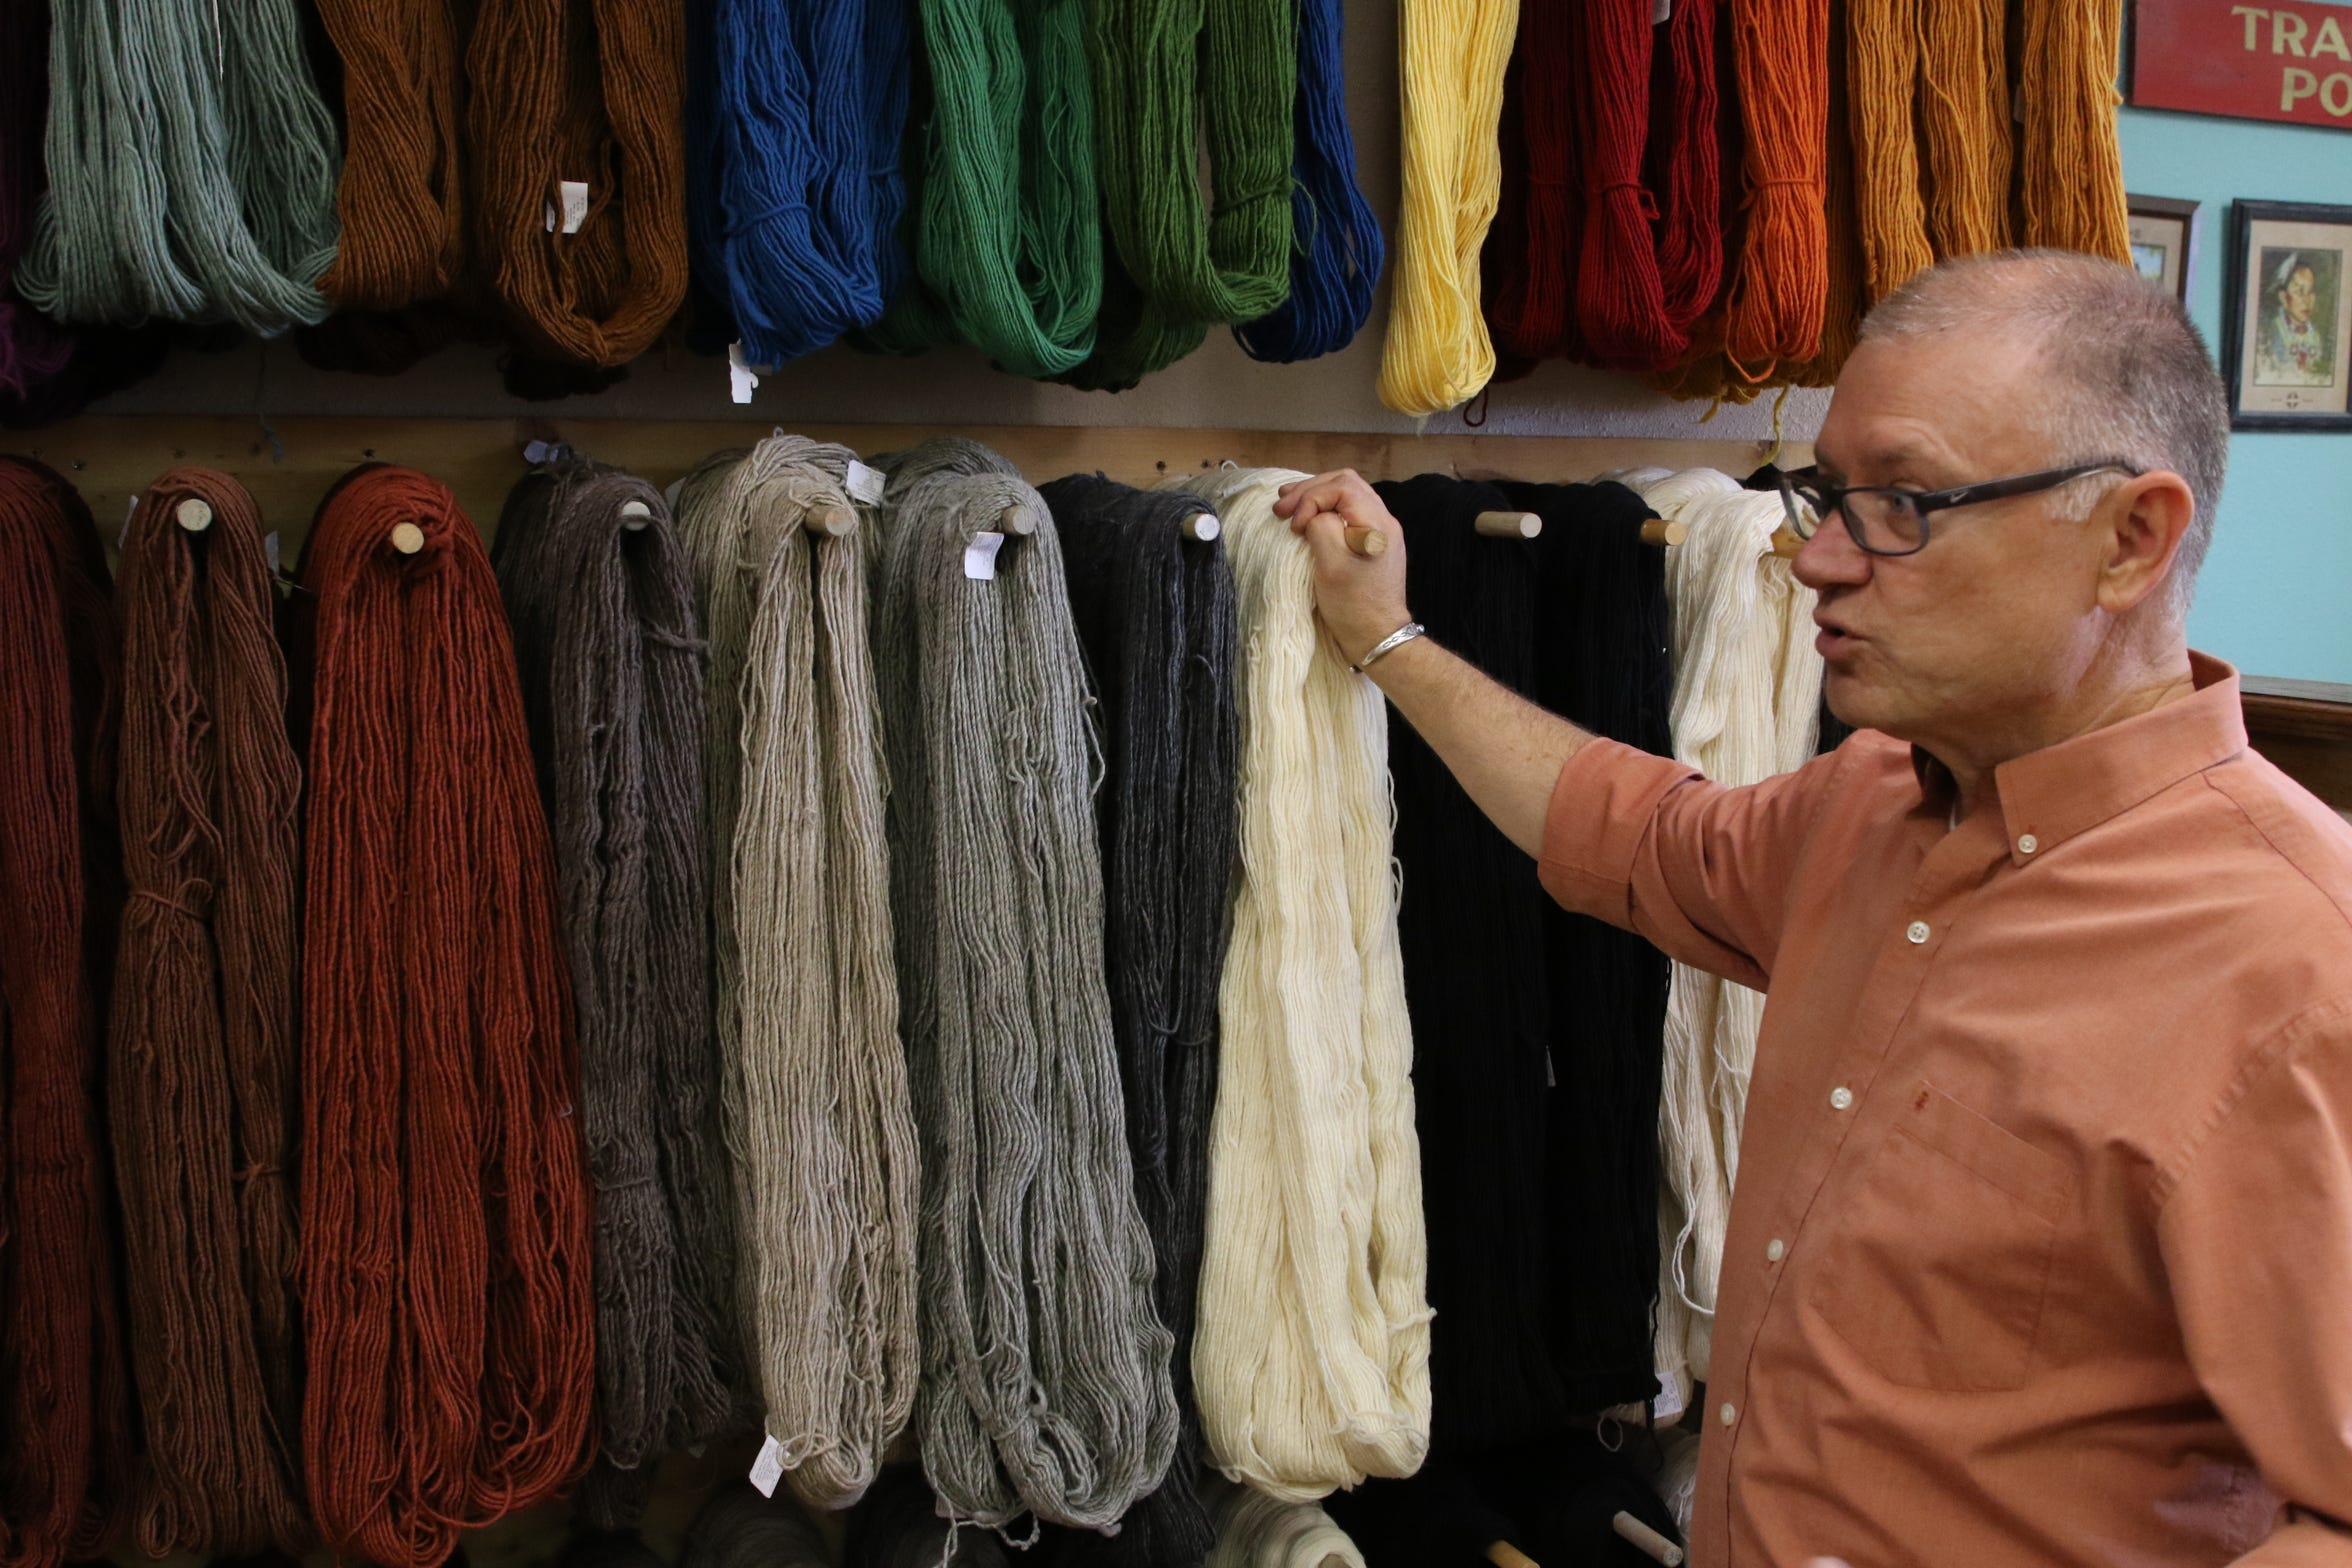 Owner Kent Morrow talks about the many shades of dyed wool offered for sale at his Shiprock Trading Post in Farmington.